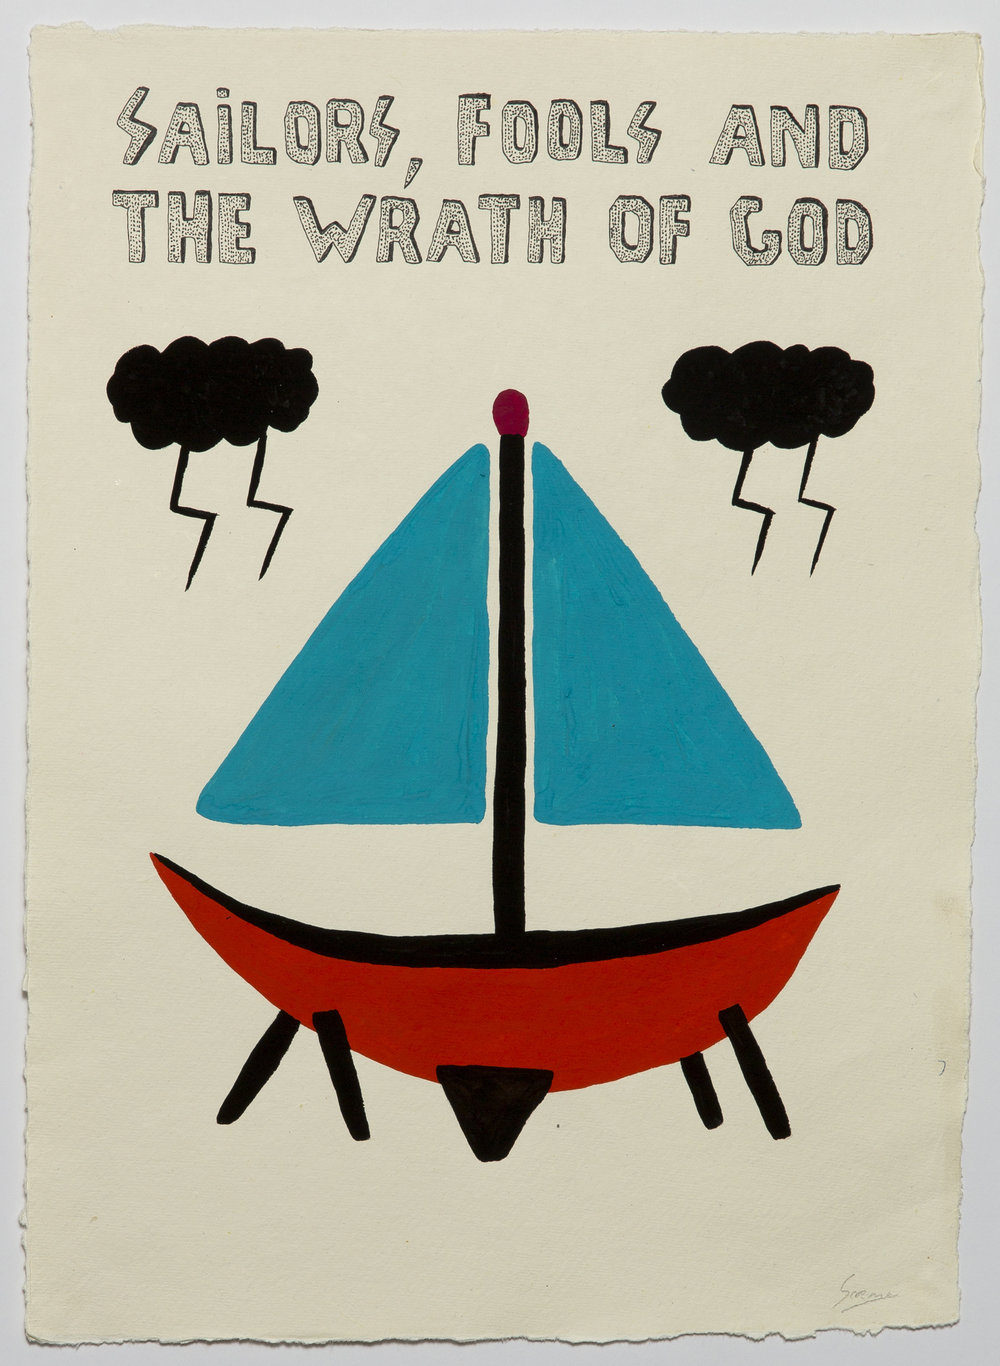 Sailors, Fools And The Wrath Of God